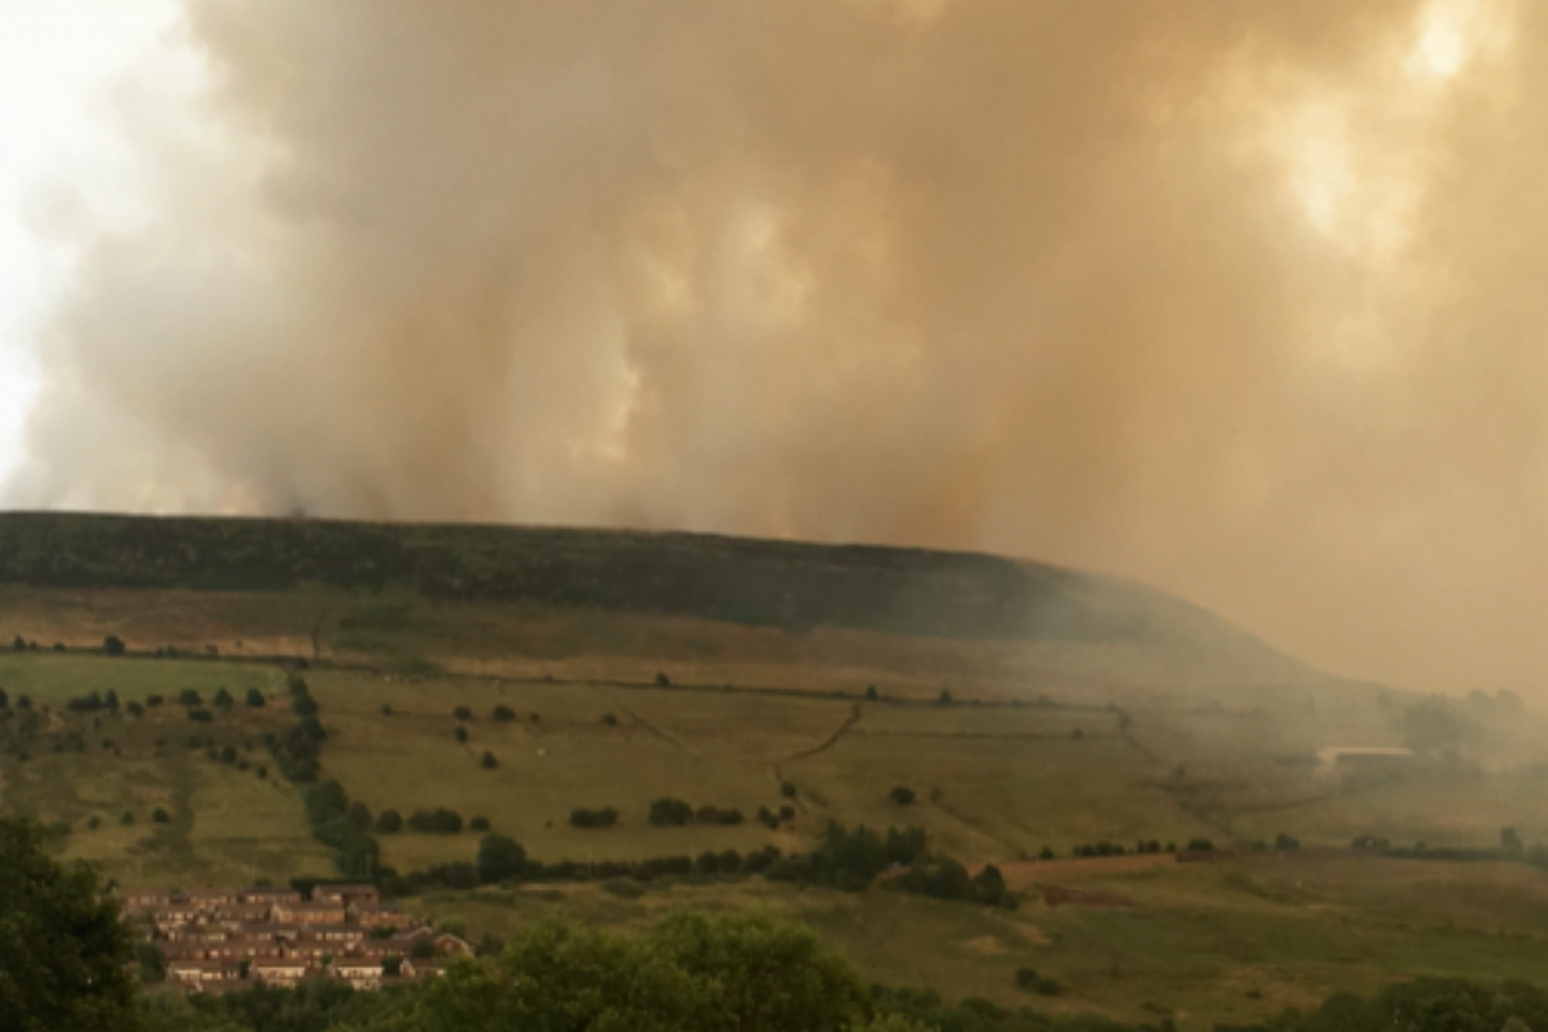 Major incident declared as fire rips through Saddleworth Moor